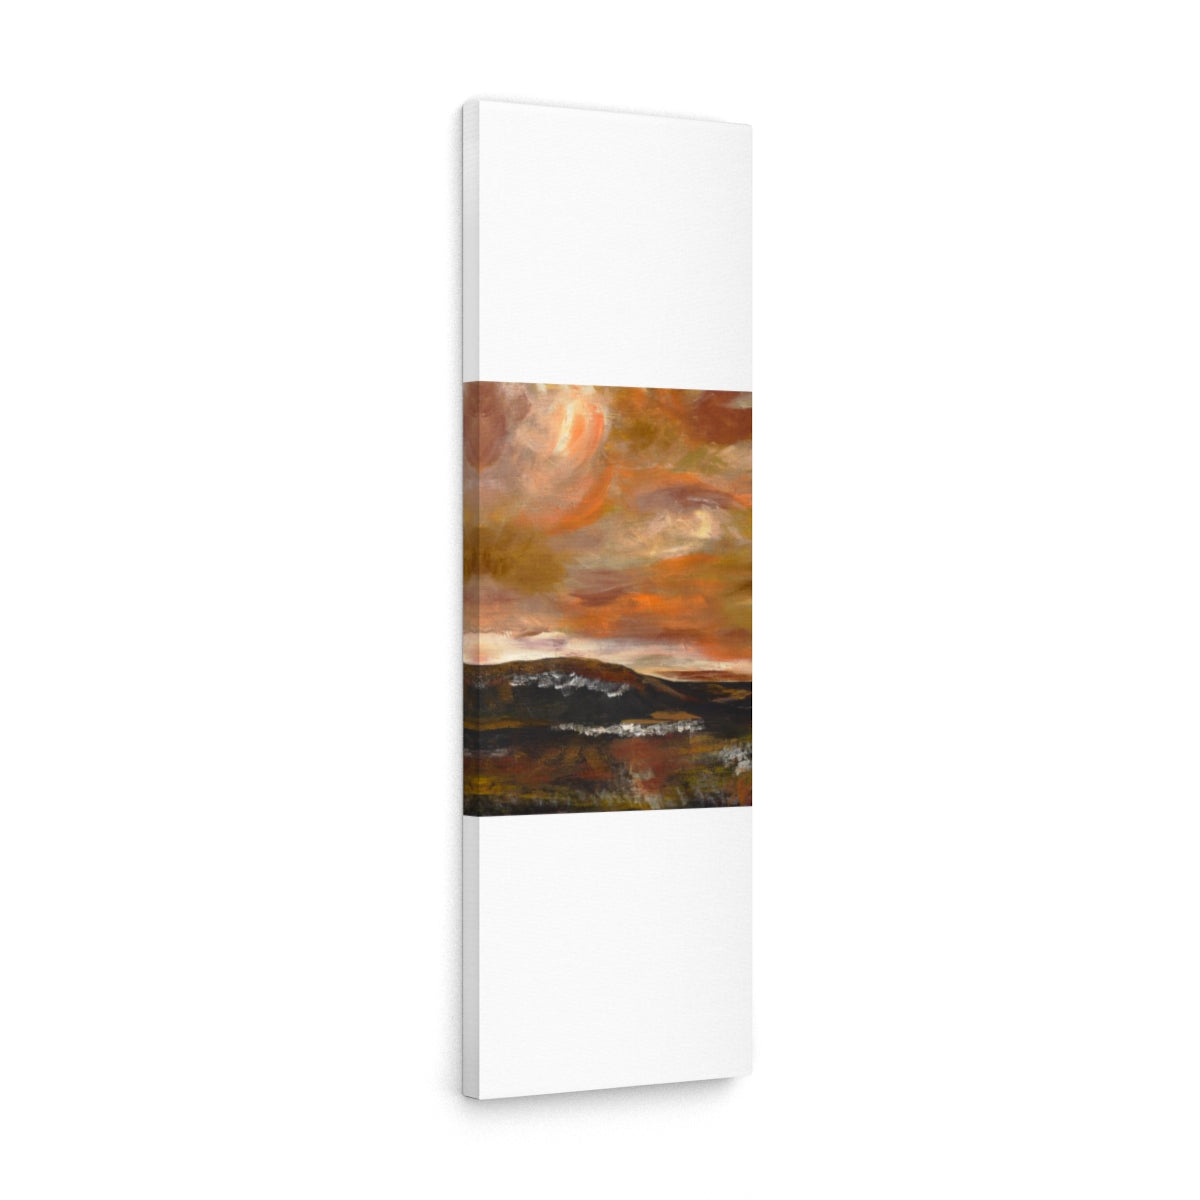 "GOLDEN VALLEY  Canvas Gallery Wraps  24"" x 30"""